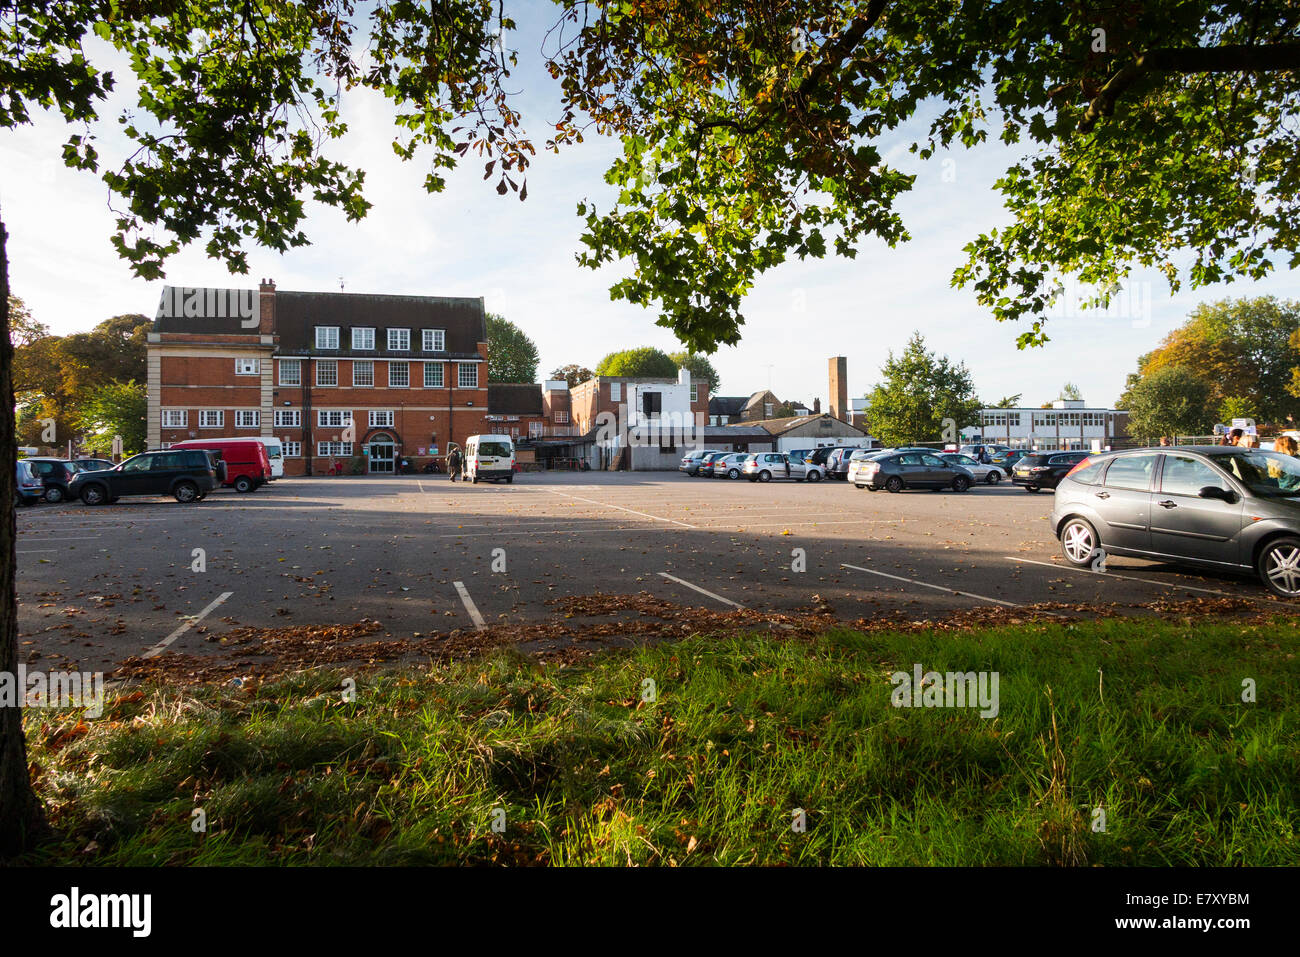 School car park during term time / cars parking in the morning drop off at a primary and secondary school. UK. - Stock Image